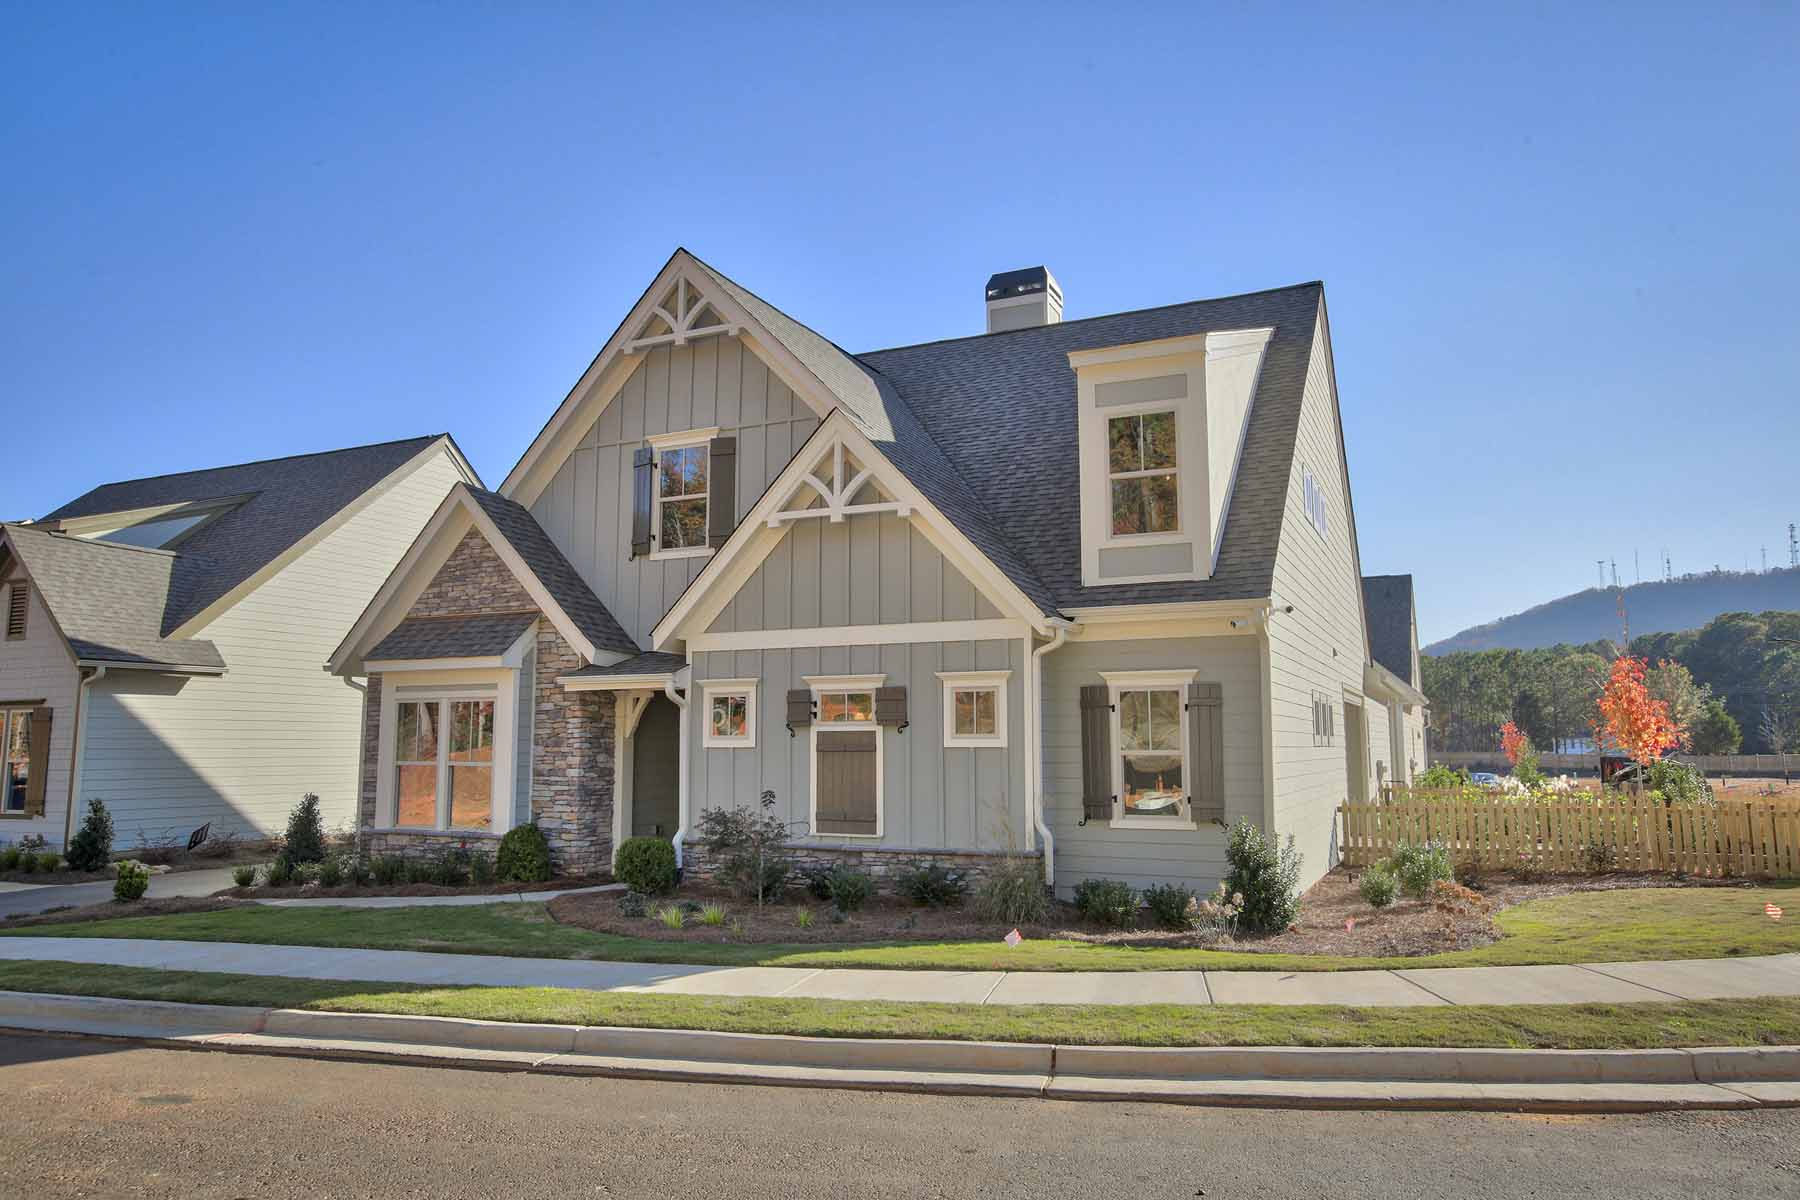 Casa Unifamiliar por un Venta en Luxury Maintenance Free Living 312 Little Pine Lane Woodstock, Georgia, 30188 Estados Unidos